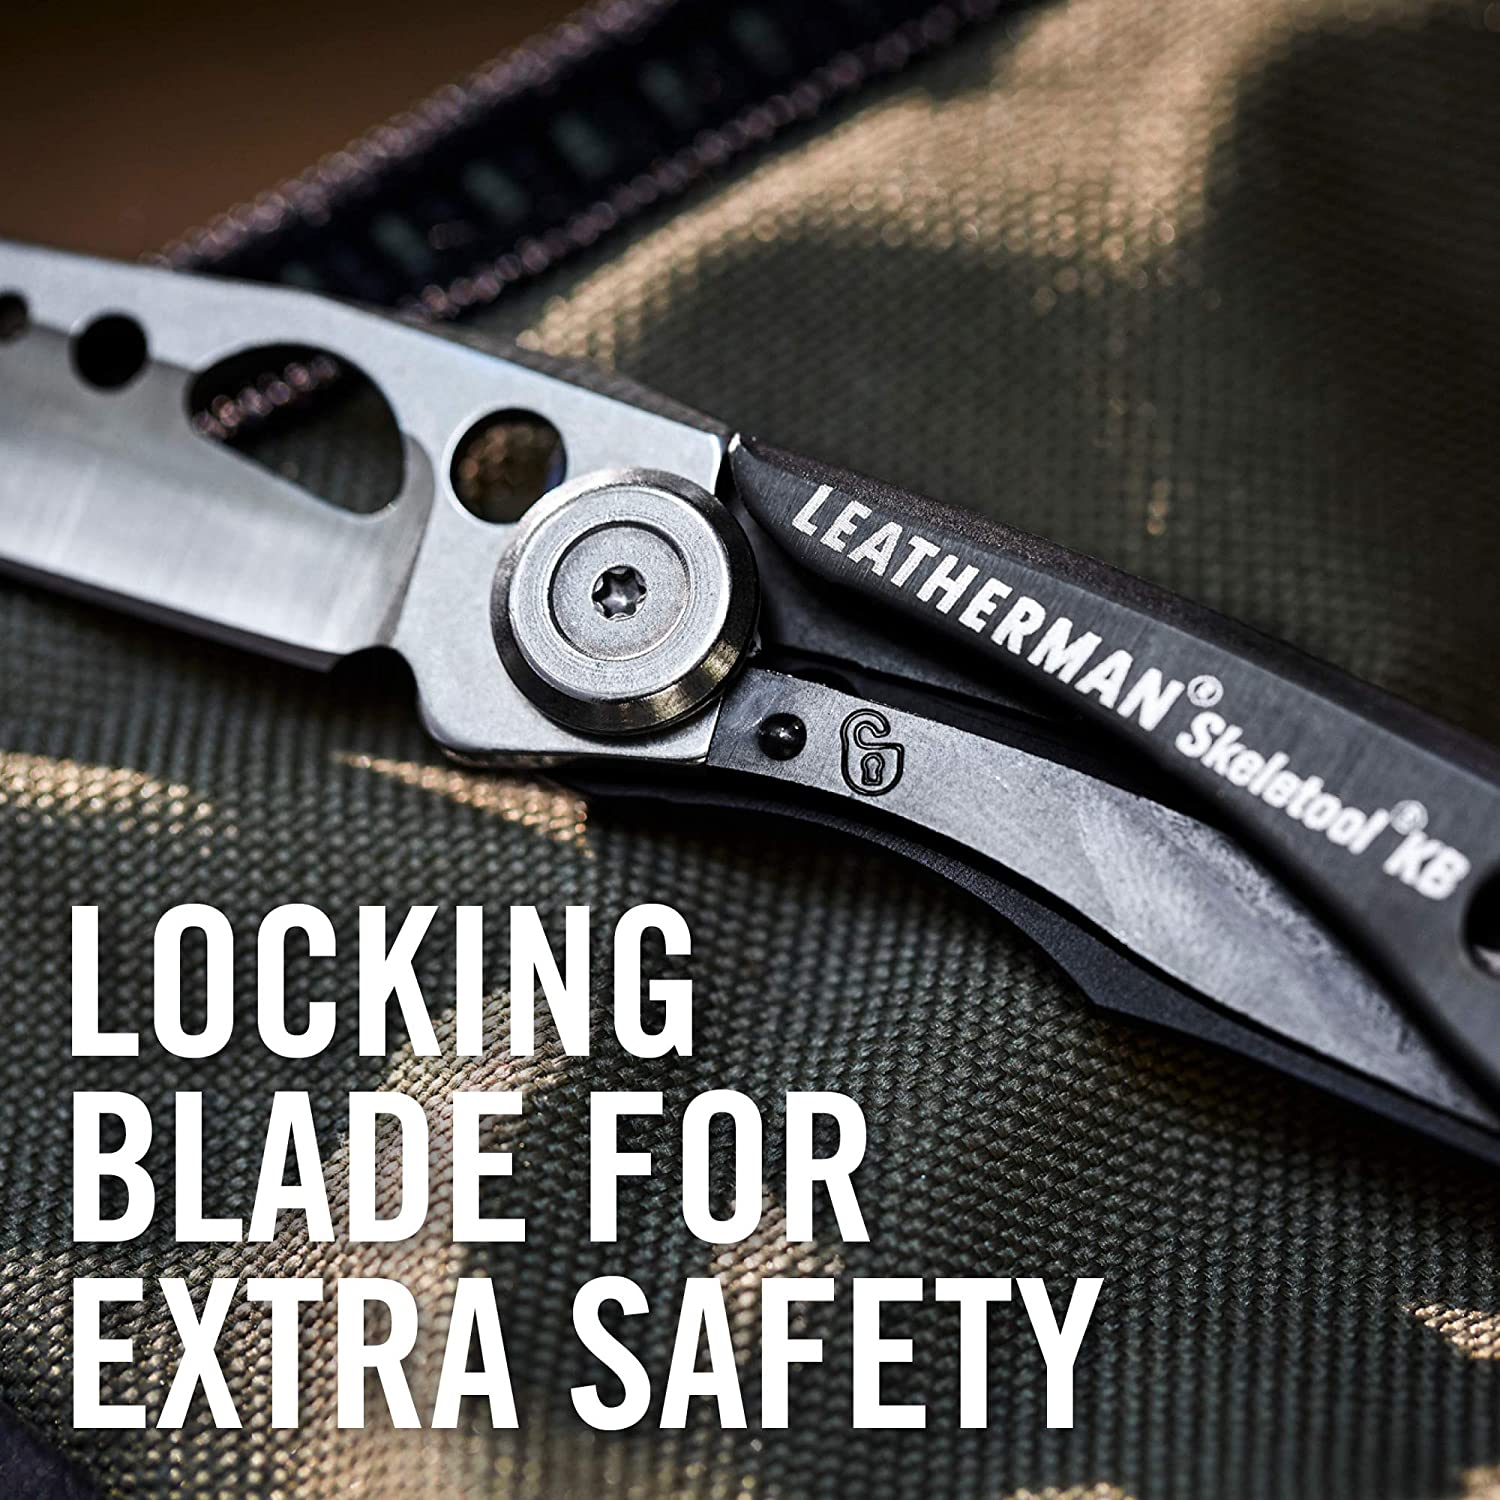 Leatherman KB Knife, Leatherman Multi Tool Knife online in India at LightMen, Leatherman tools india, compact Foldable pocket Knife, best outdoor knife, 420HC Straight Blade Knife